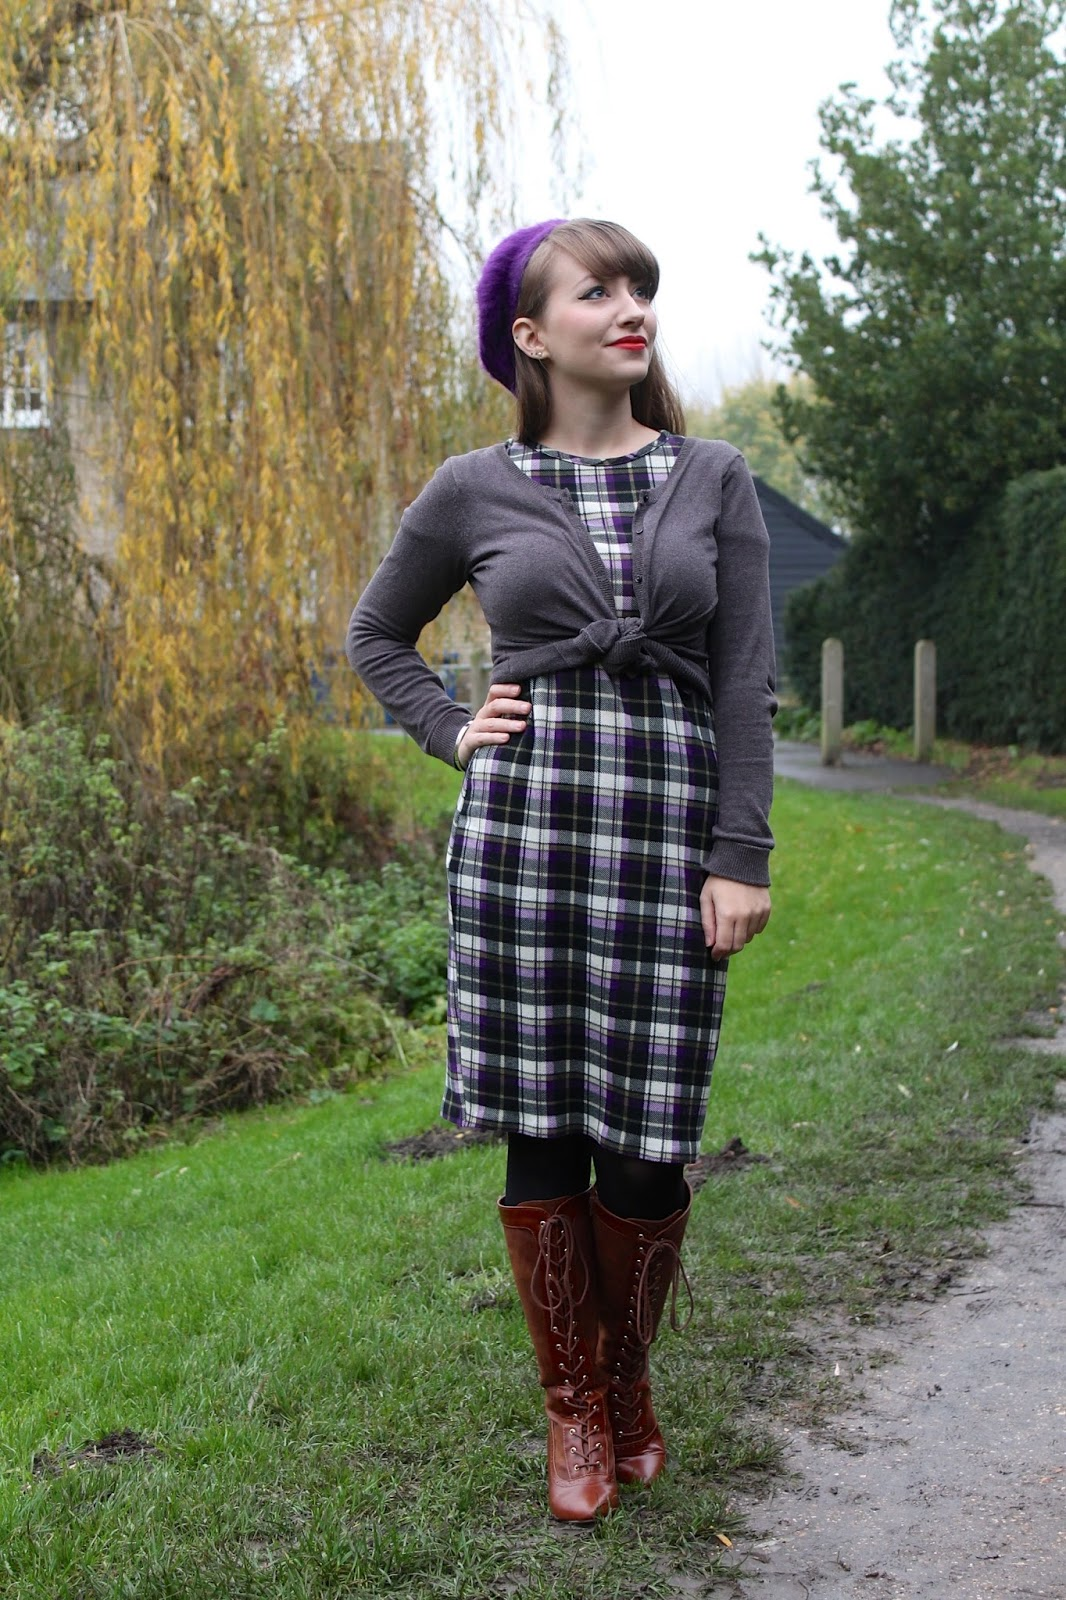 Knee-length BAIT boots for a cute vintage look